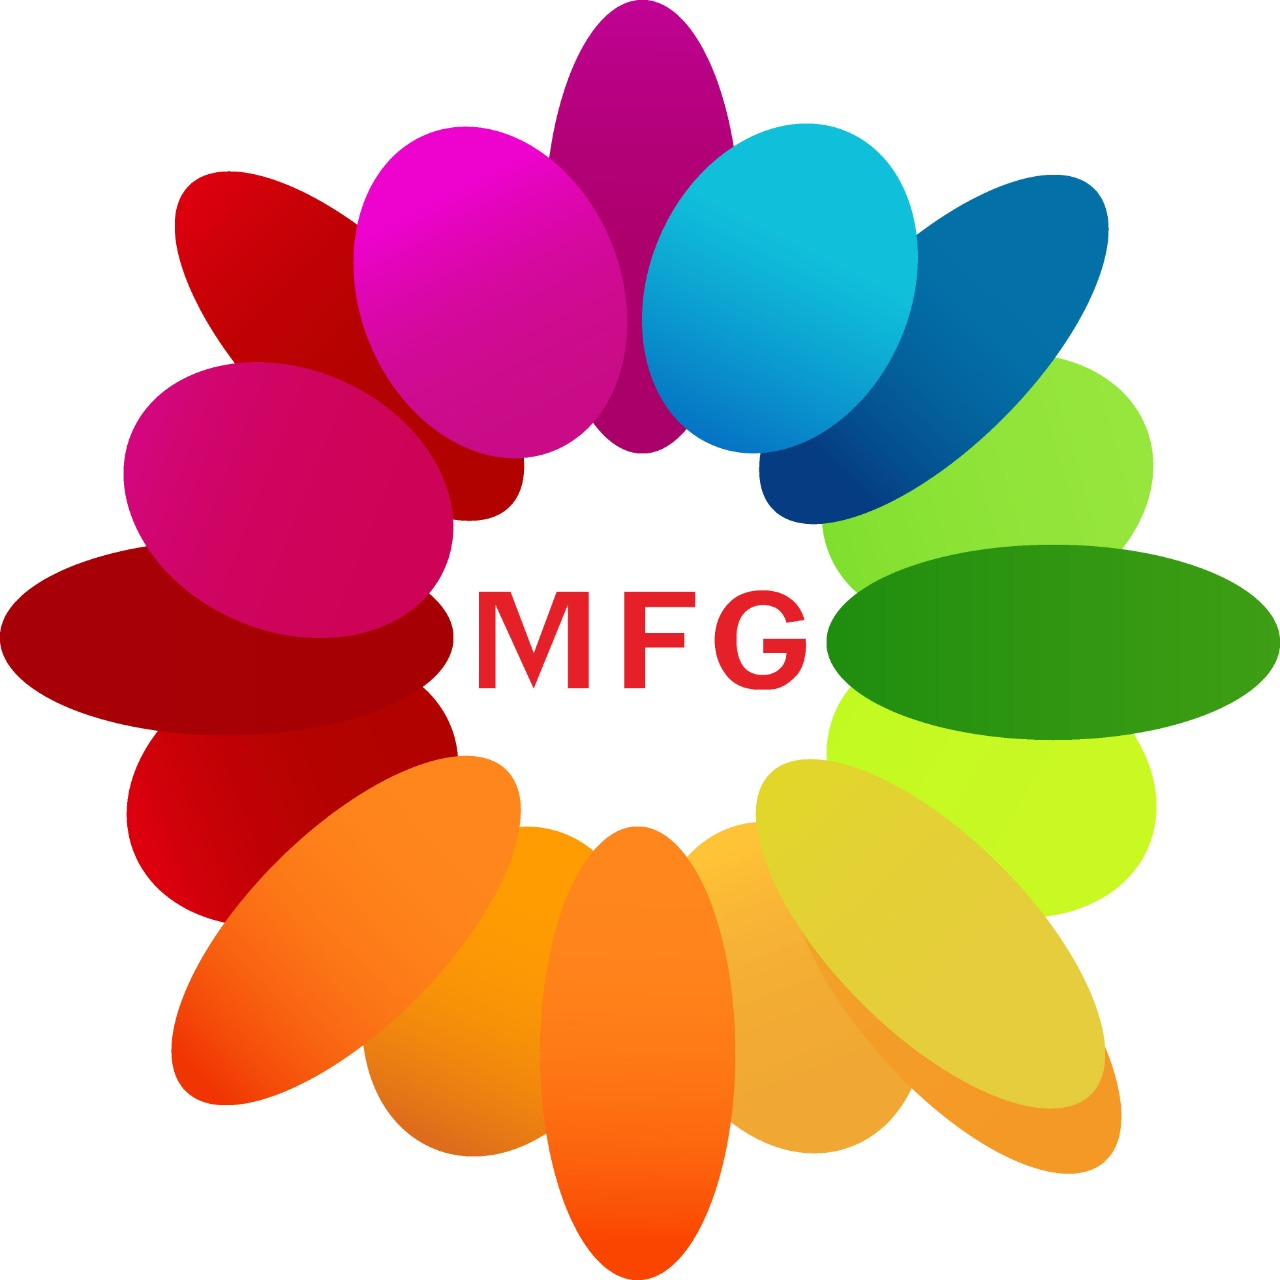 1 kg chocovanilla fresh cream cake with 6 inch height teddybear